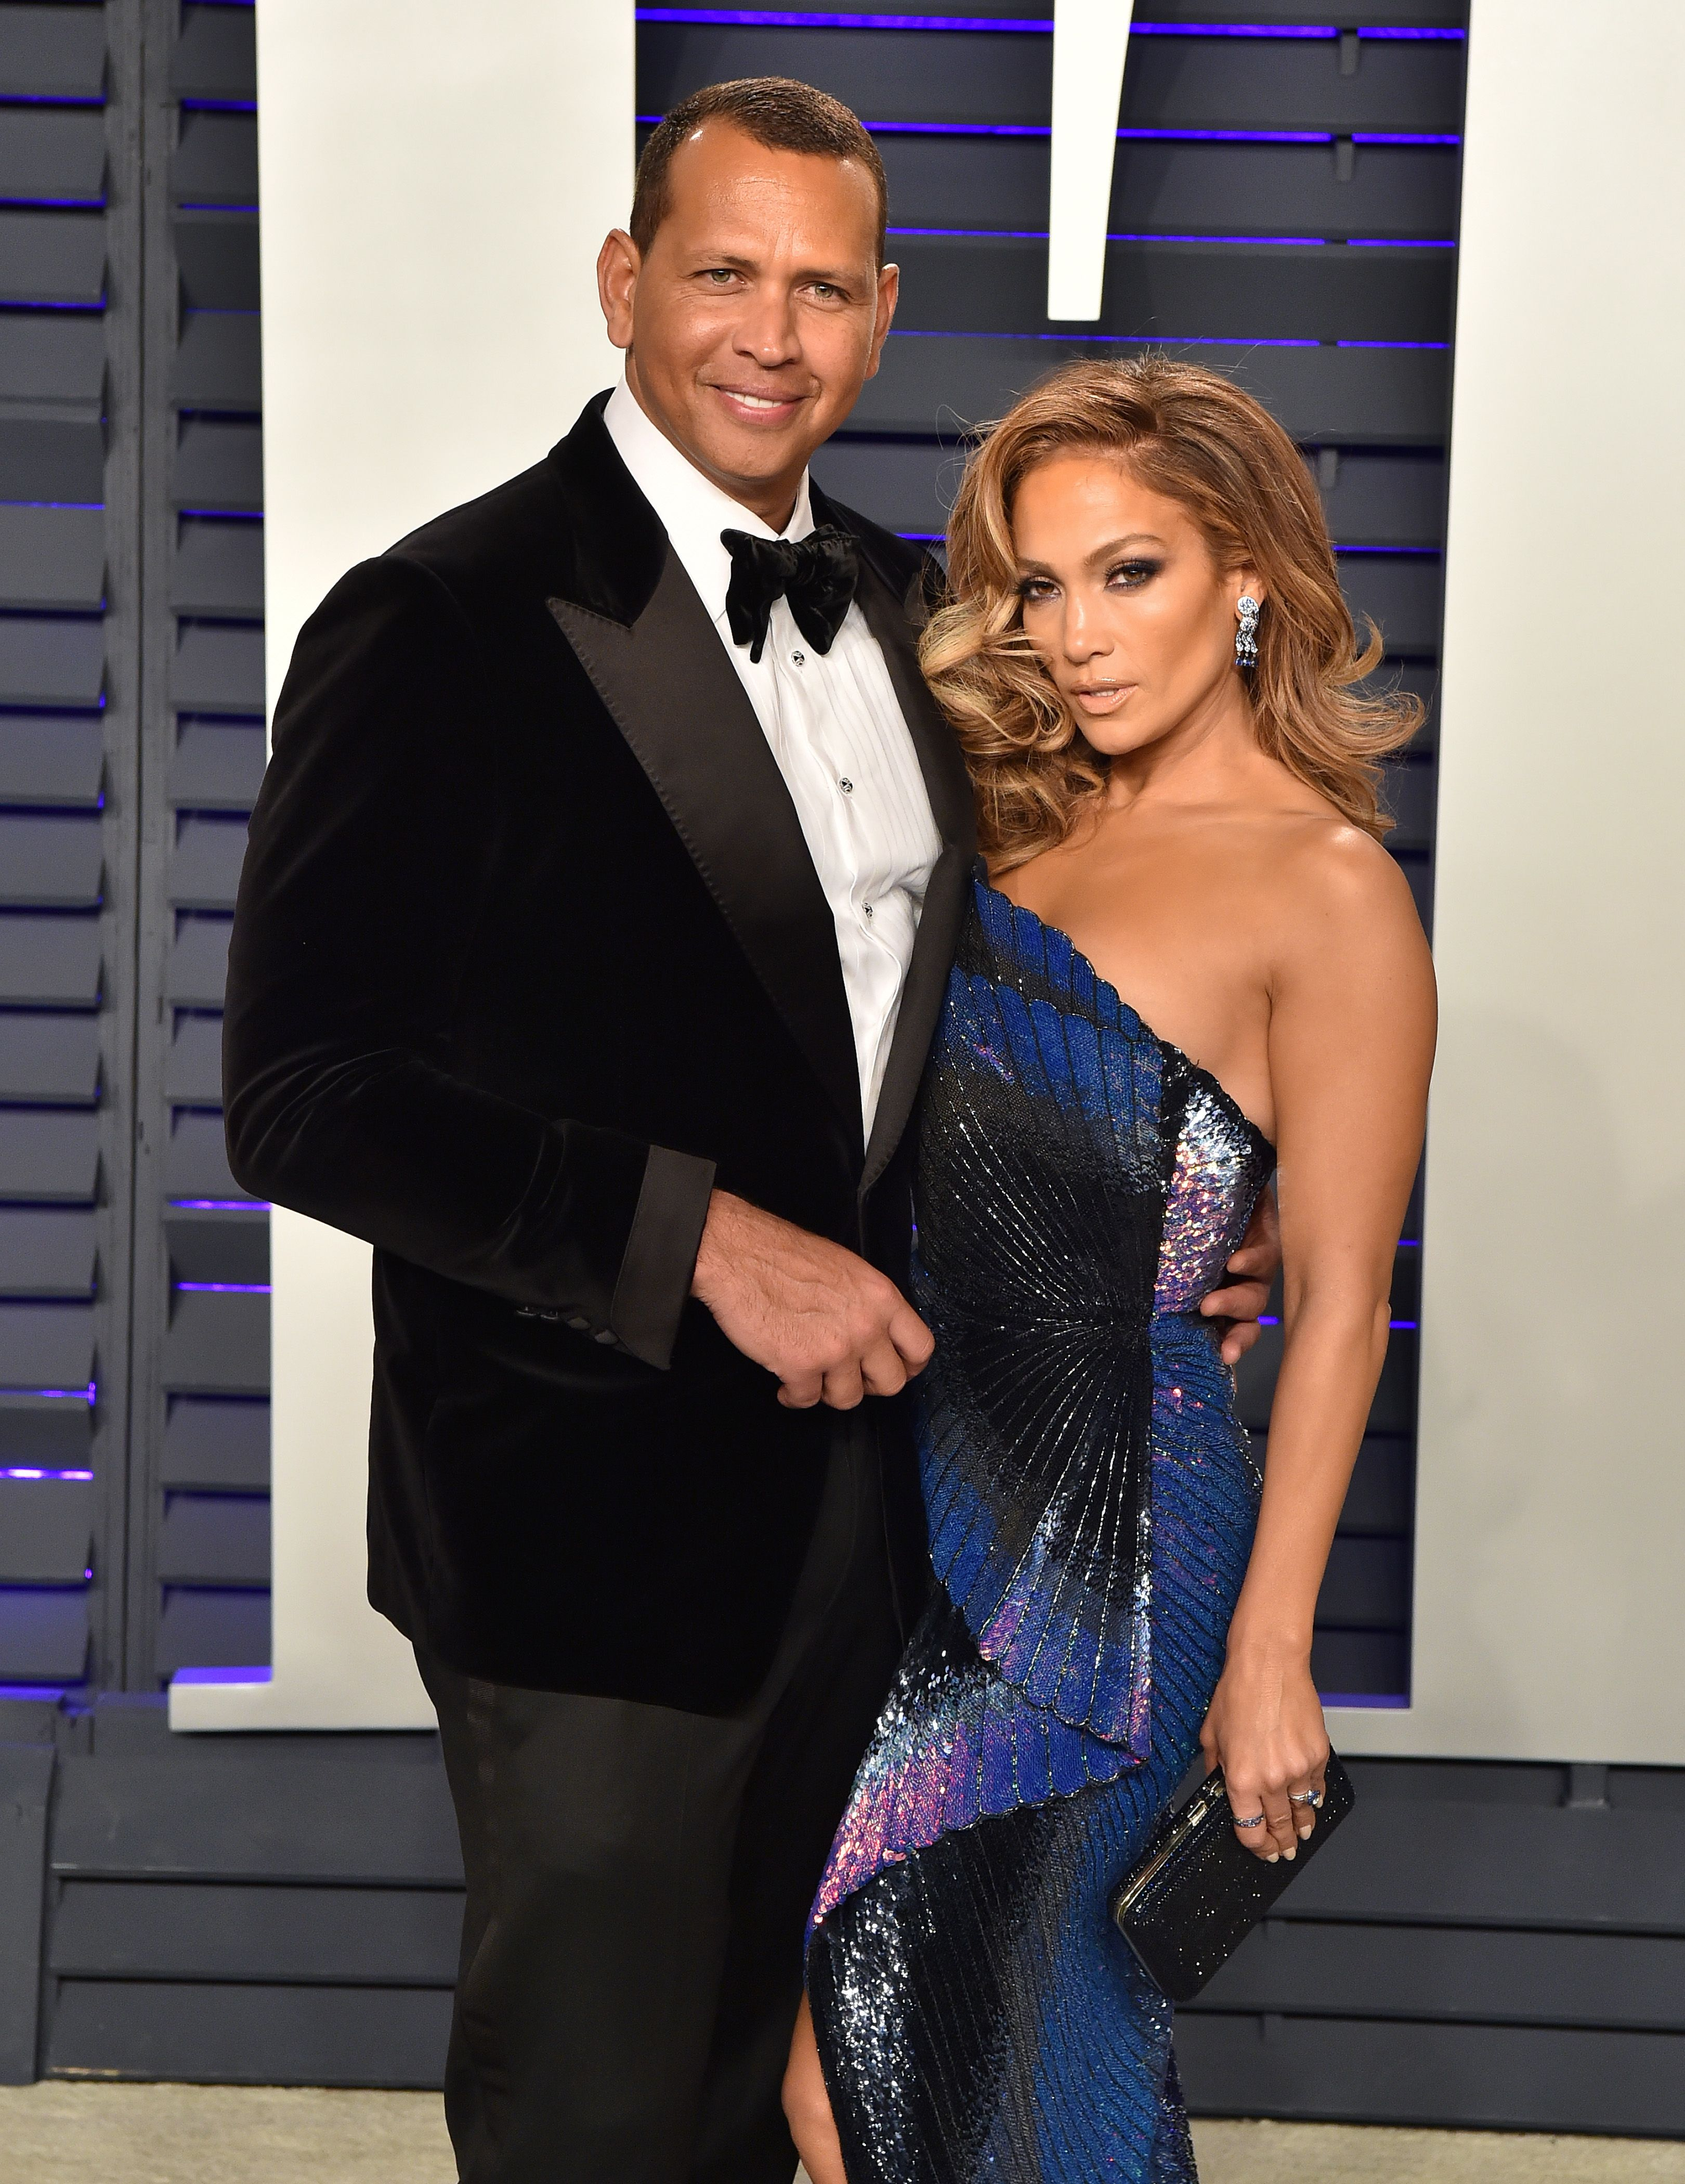 The 40 Best Modern Celebrity Love Stories of All Time